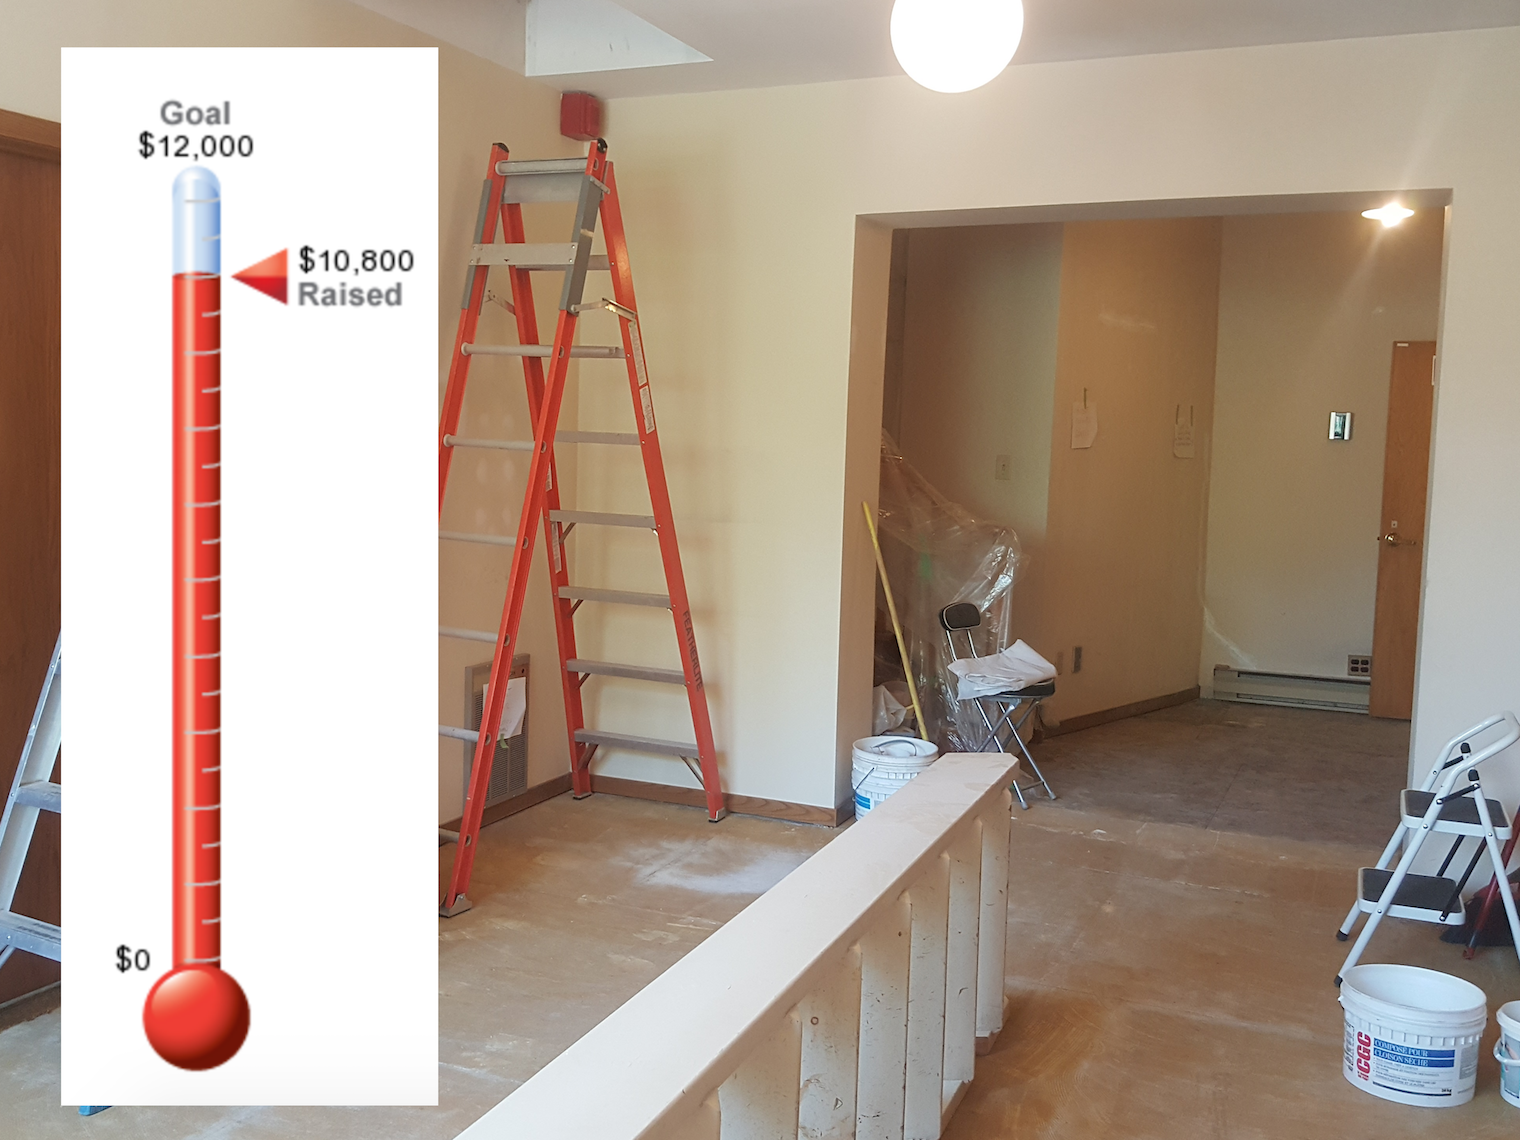 Fundraising Update For The Back Of Church Renovation